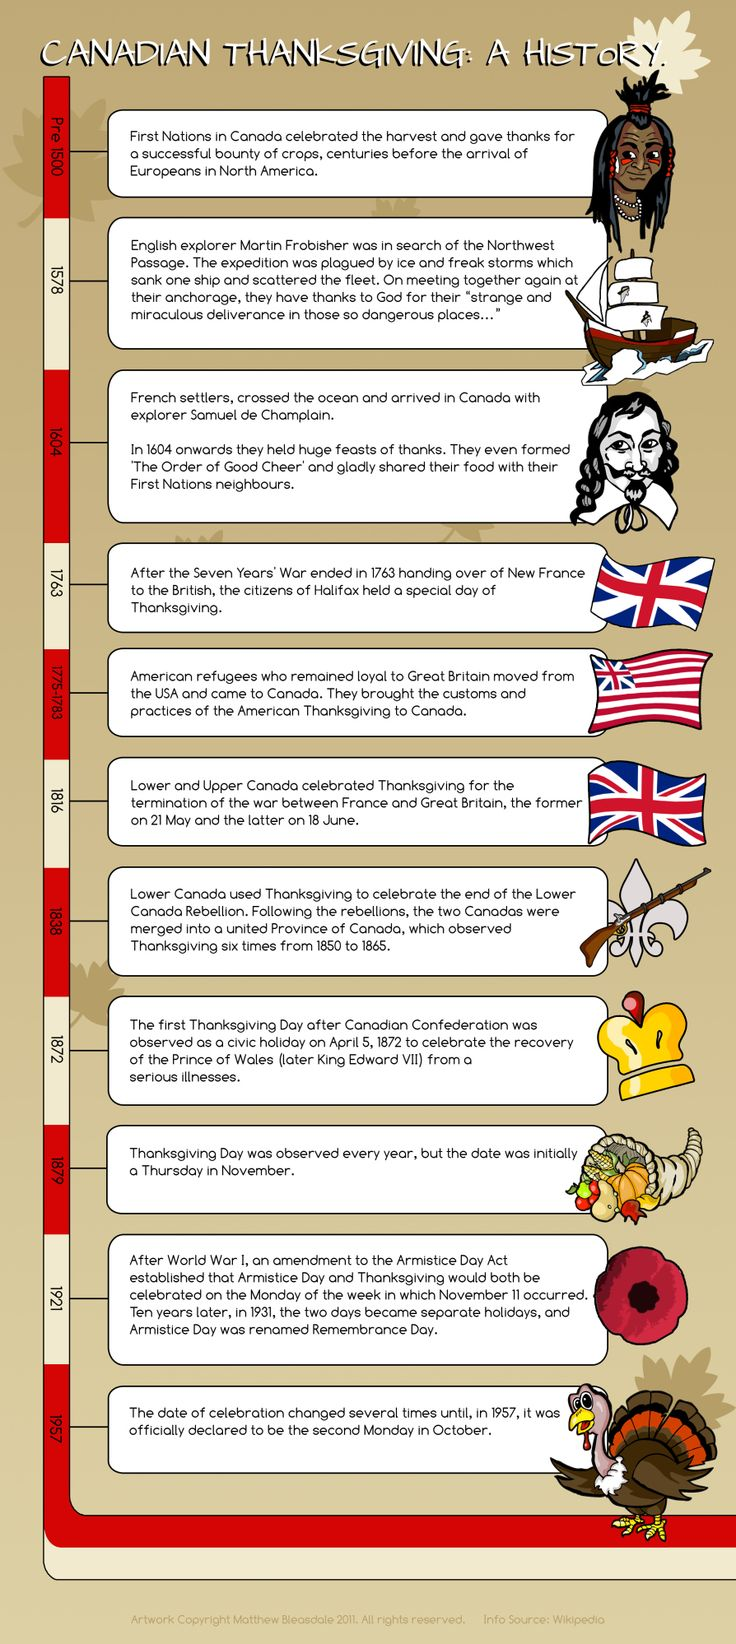 An interesting Thanksgiving history of our neighbors to the north. Wishing all Canadians a Happy Thanksgiving  - Monday, October 14!